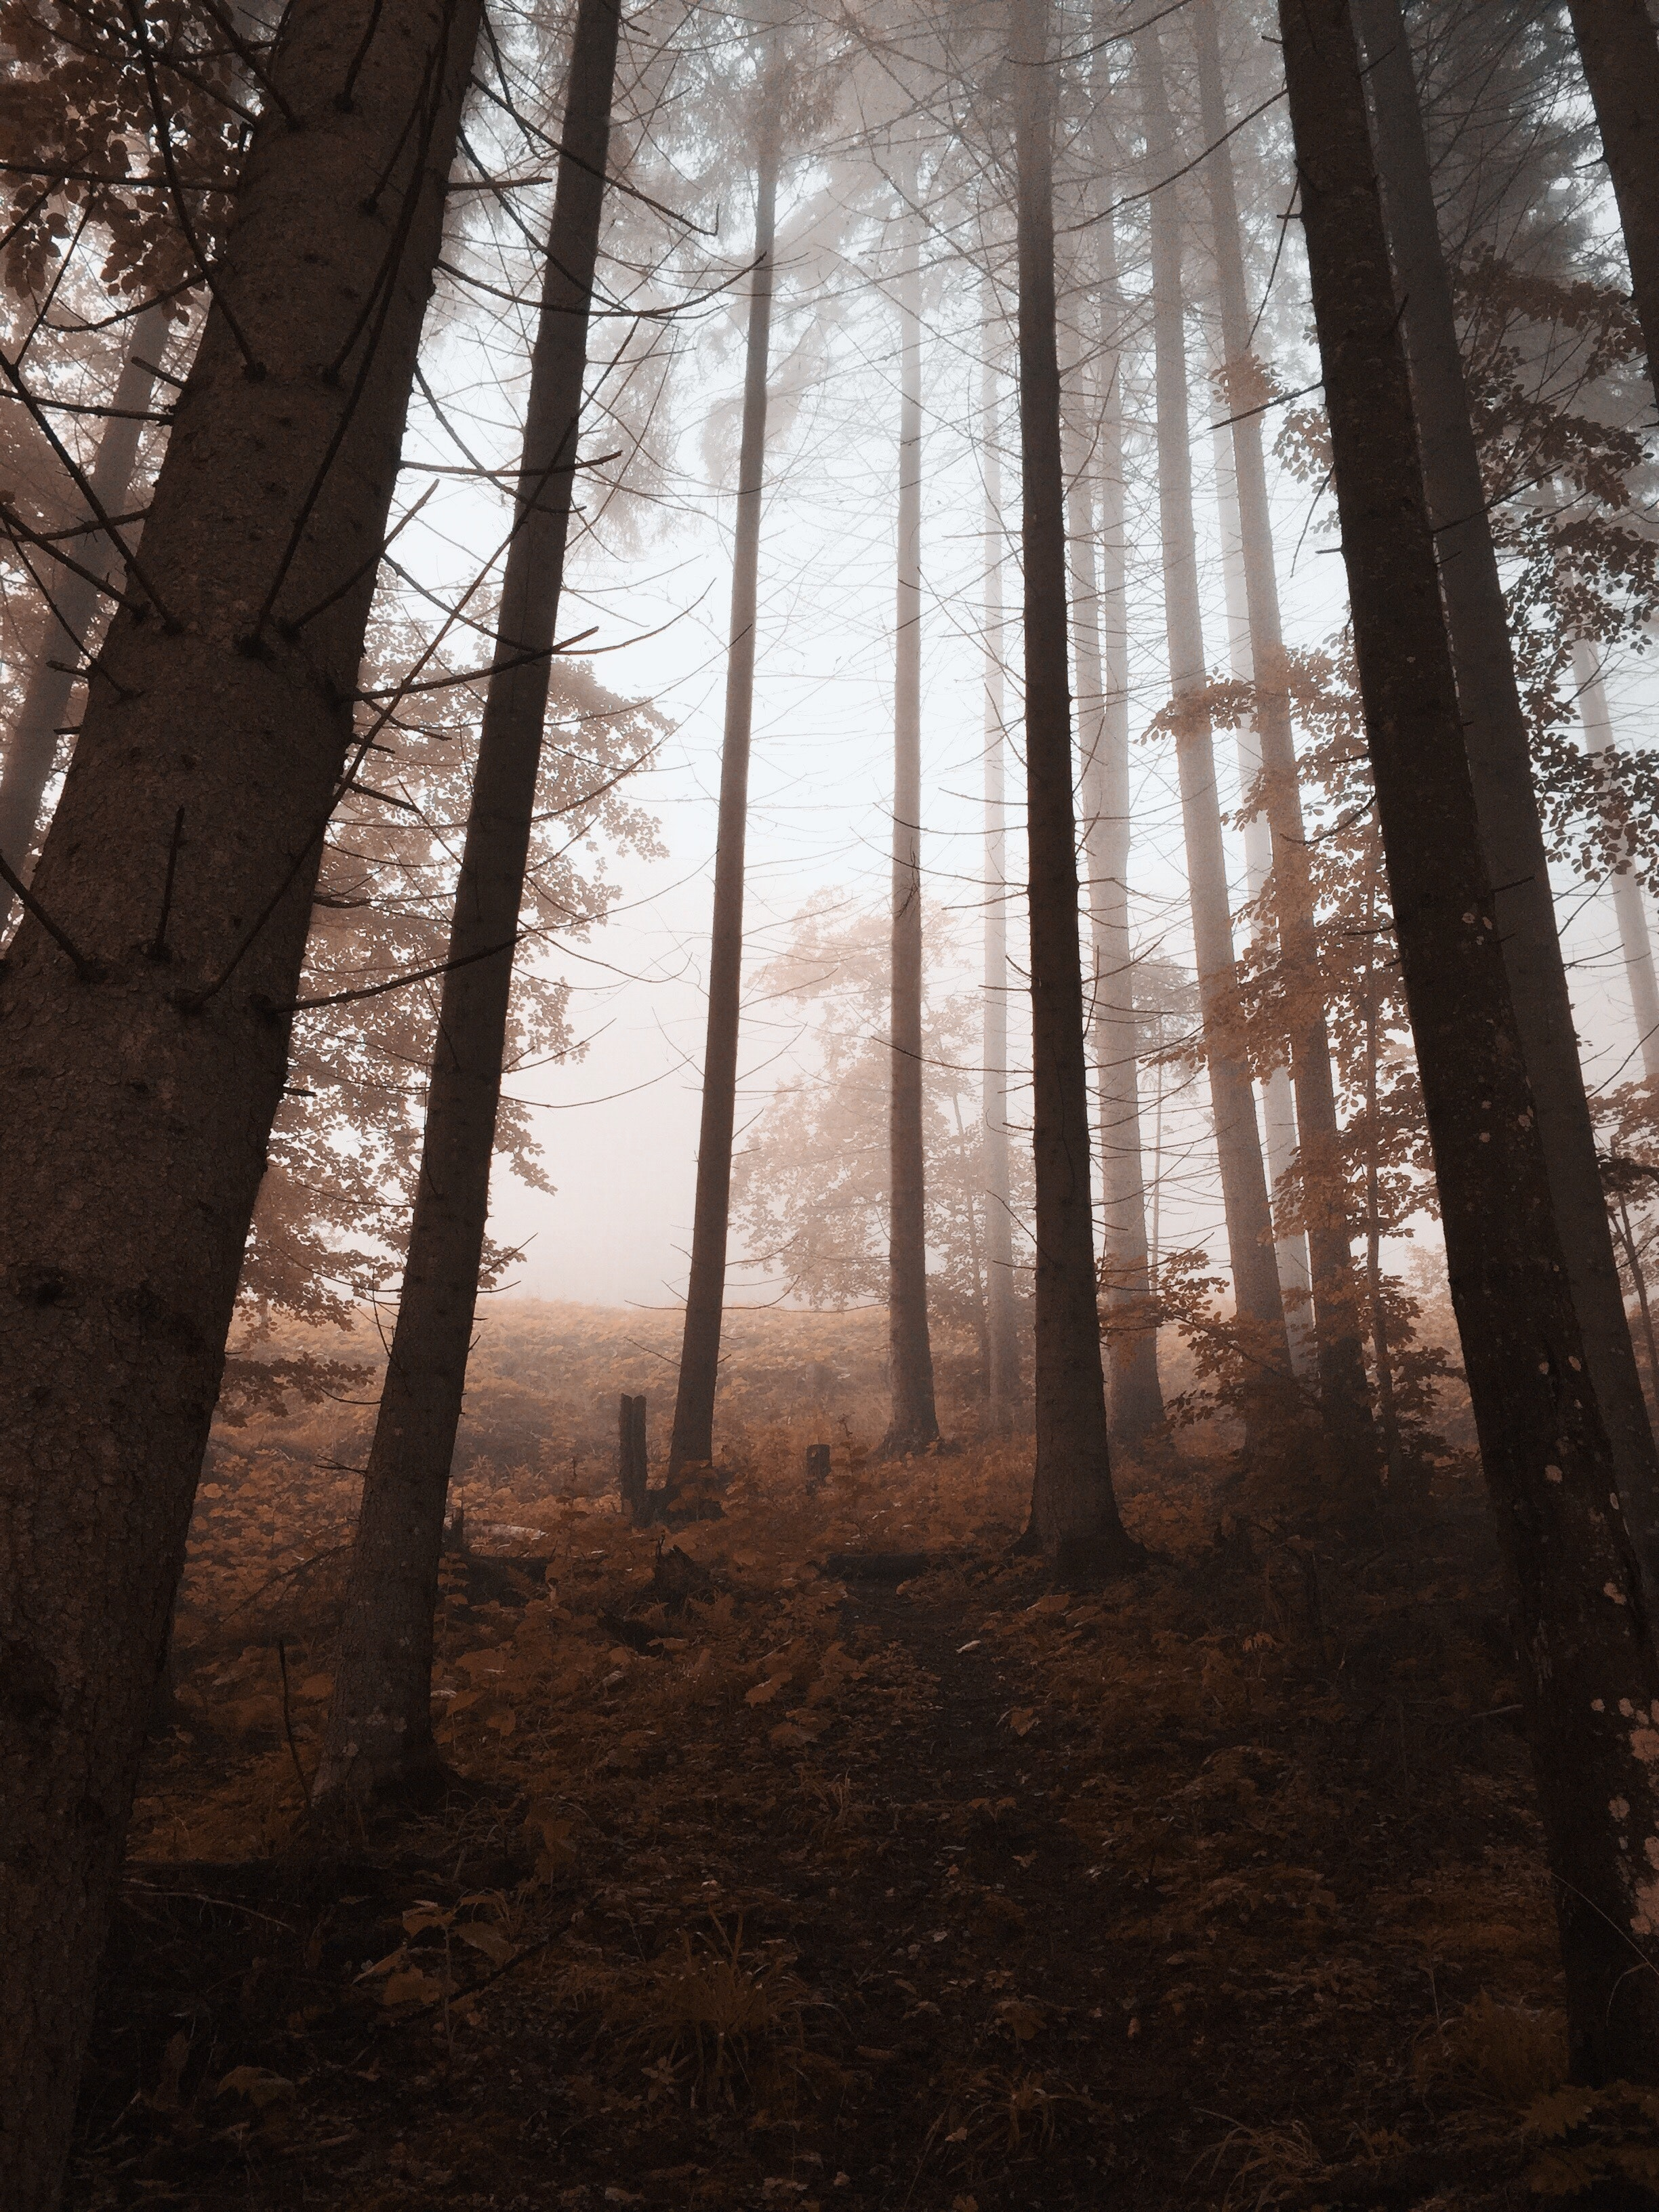 Low angle view of a foggy autumn forest